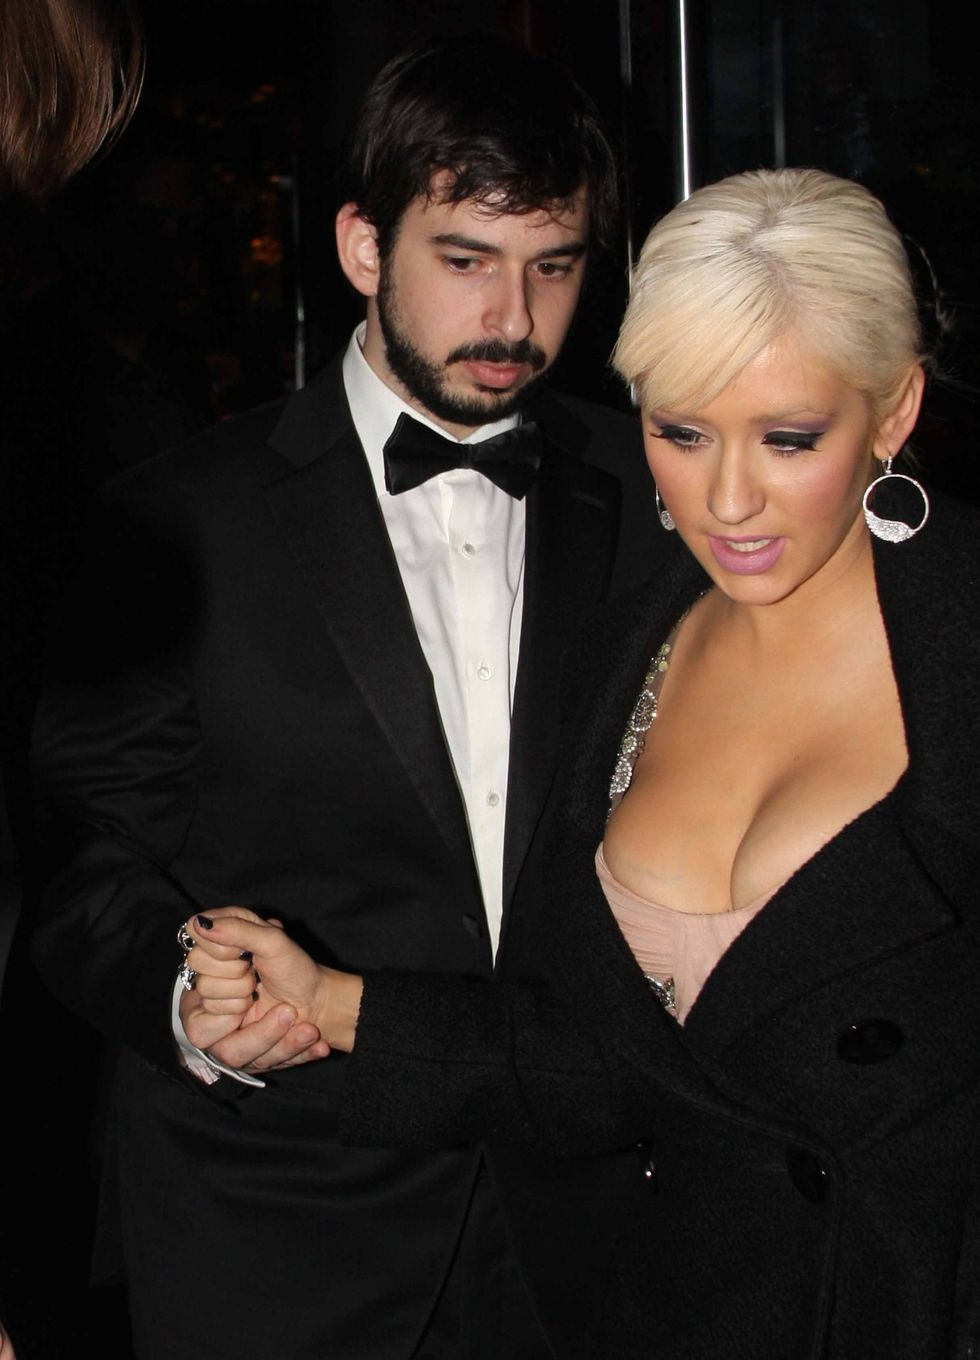 christina-aguilera-cleavage-candids-at-latelier-restaurant-in-london-01